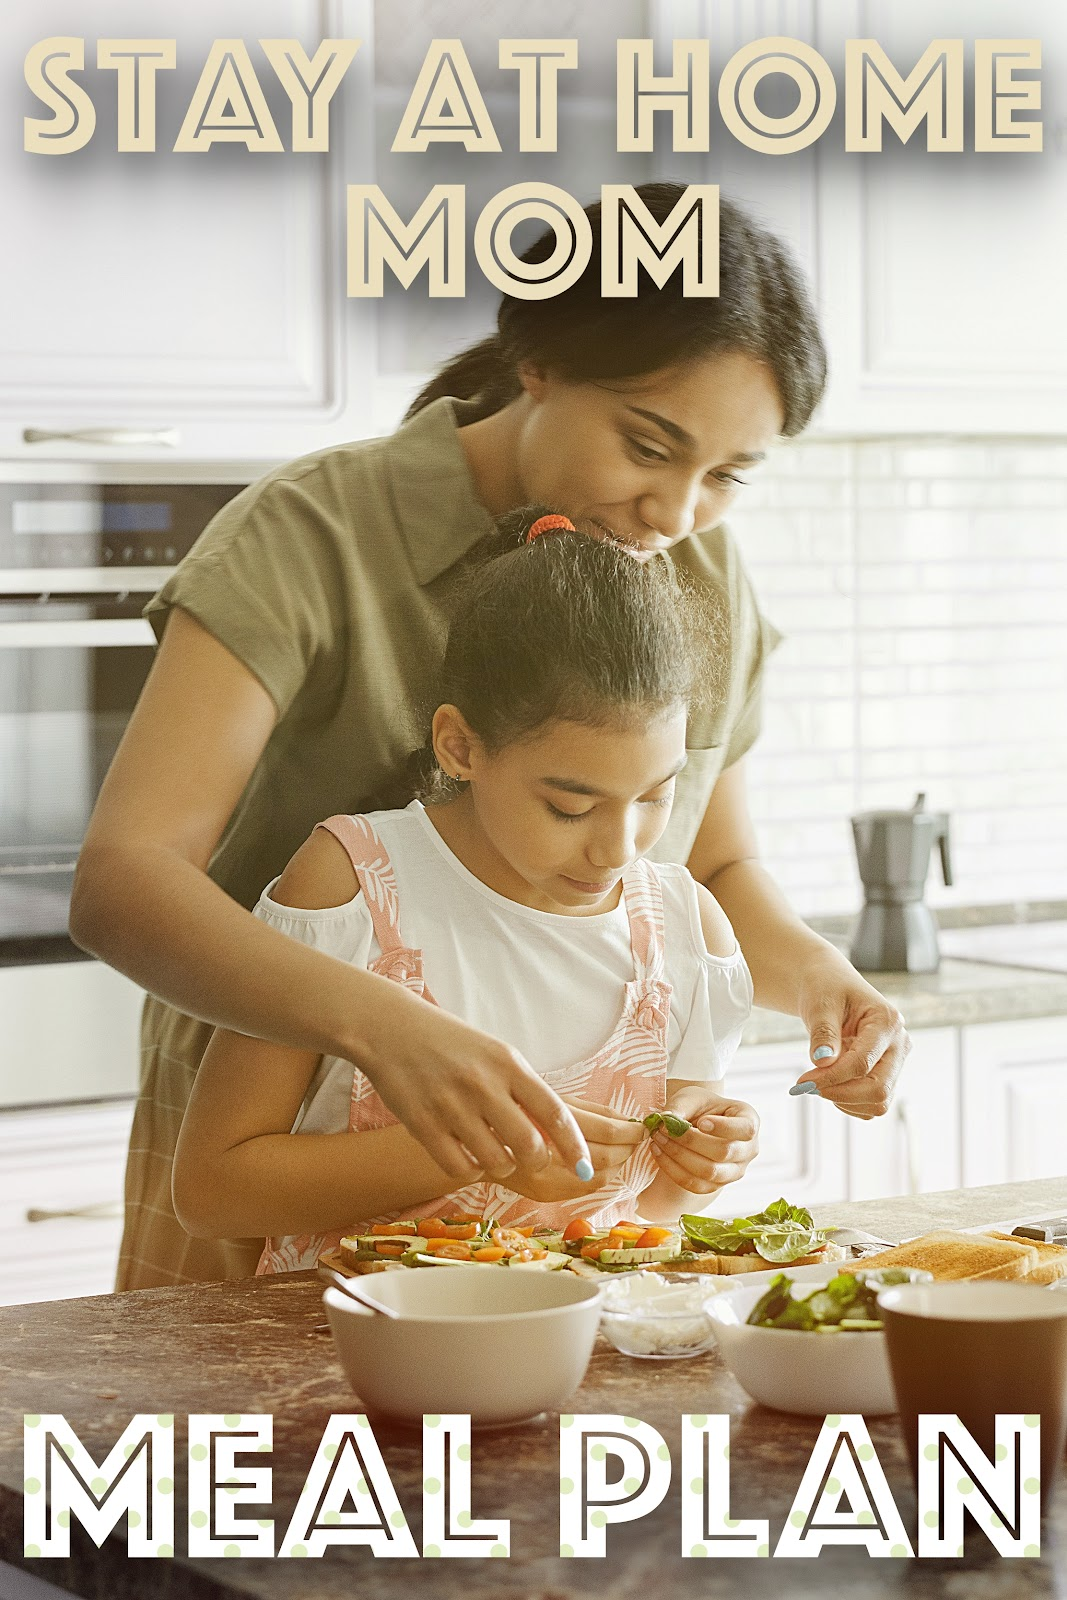 stay at home mom meal plan with kid